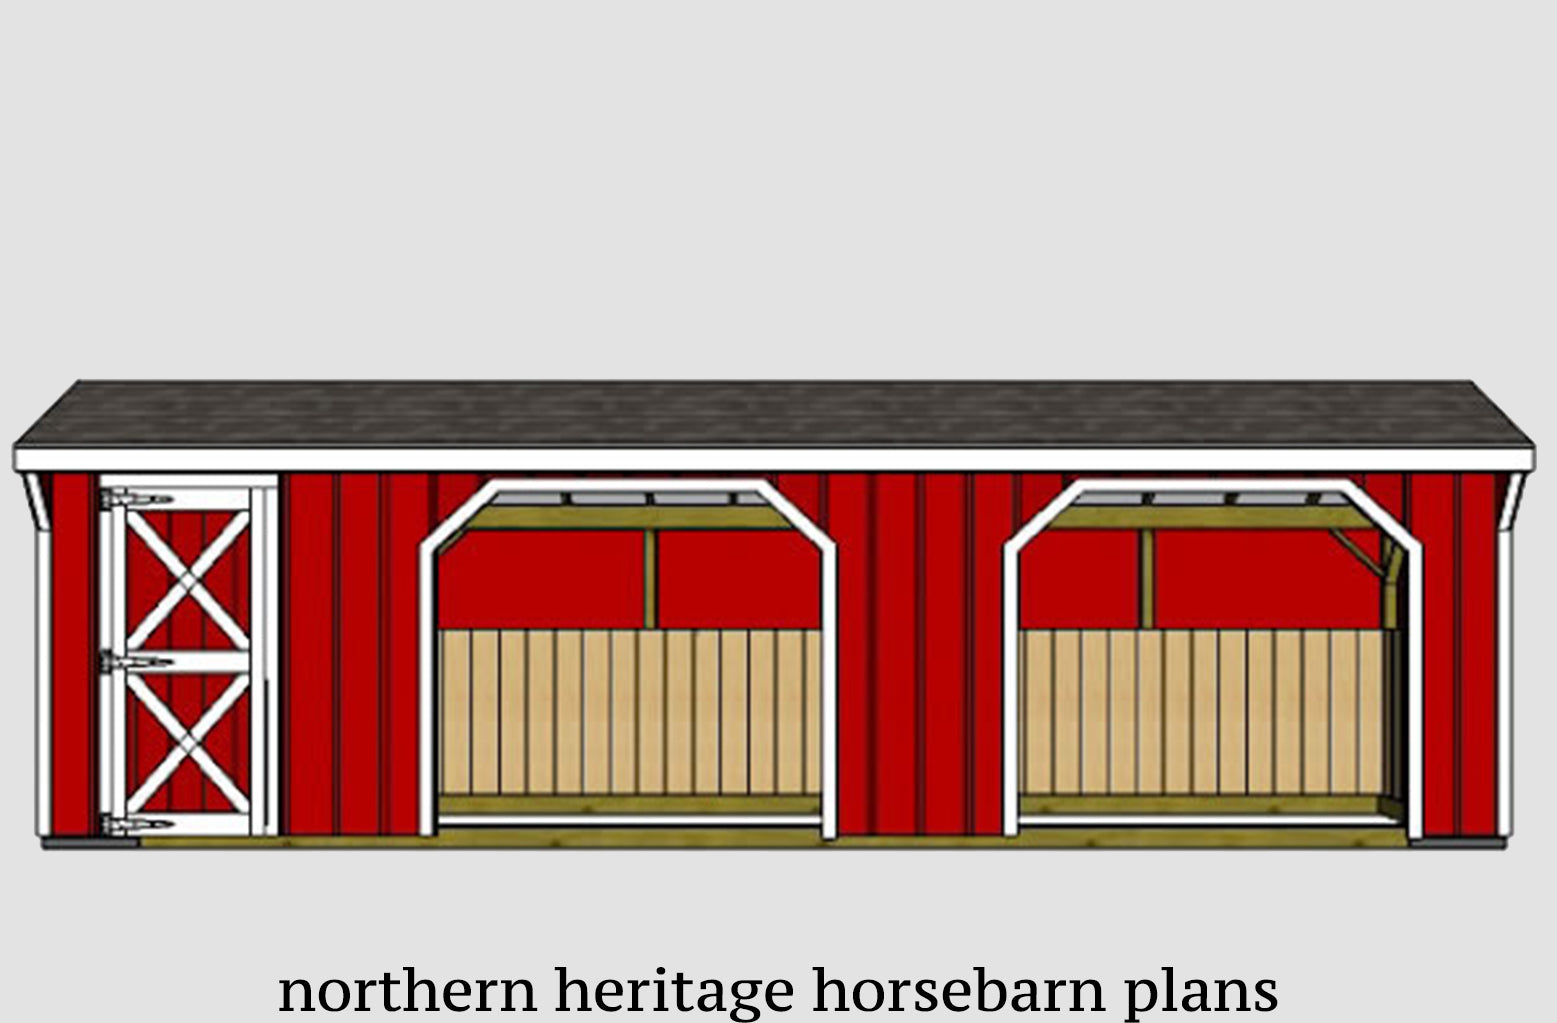 10x30 Run In Loafing Horse Barn Plan With Added Tack Room Bonus 2 10x Northern Heritage Horsebarn Plans